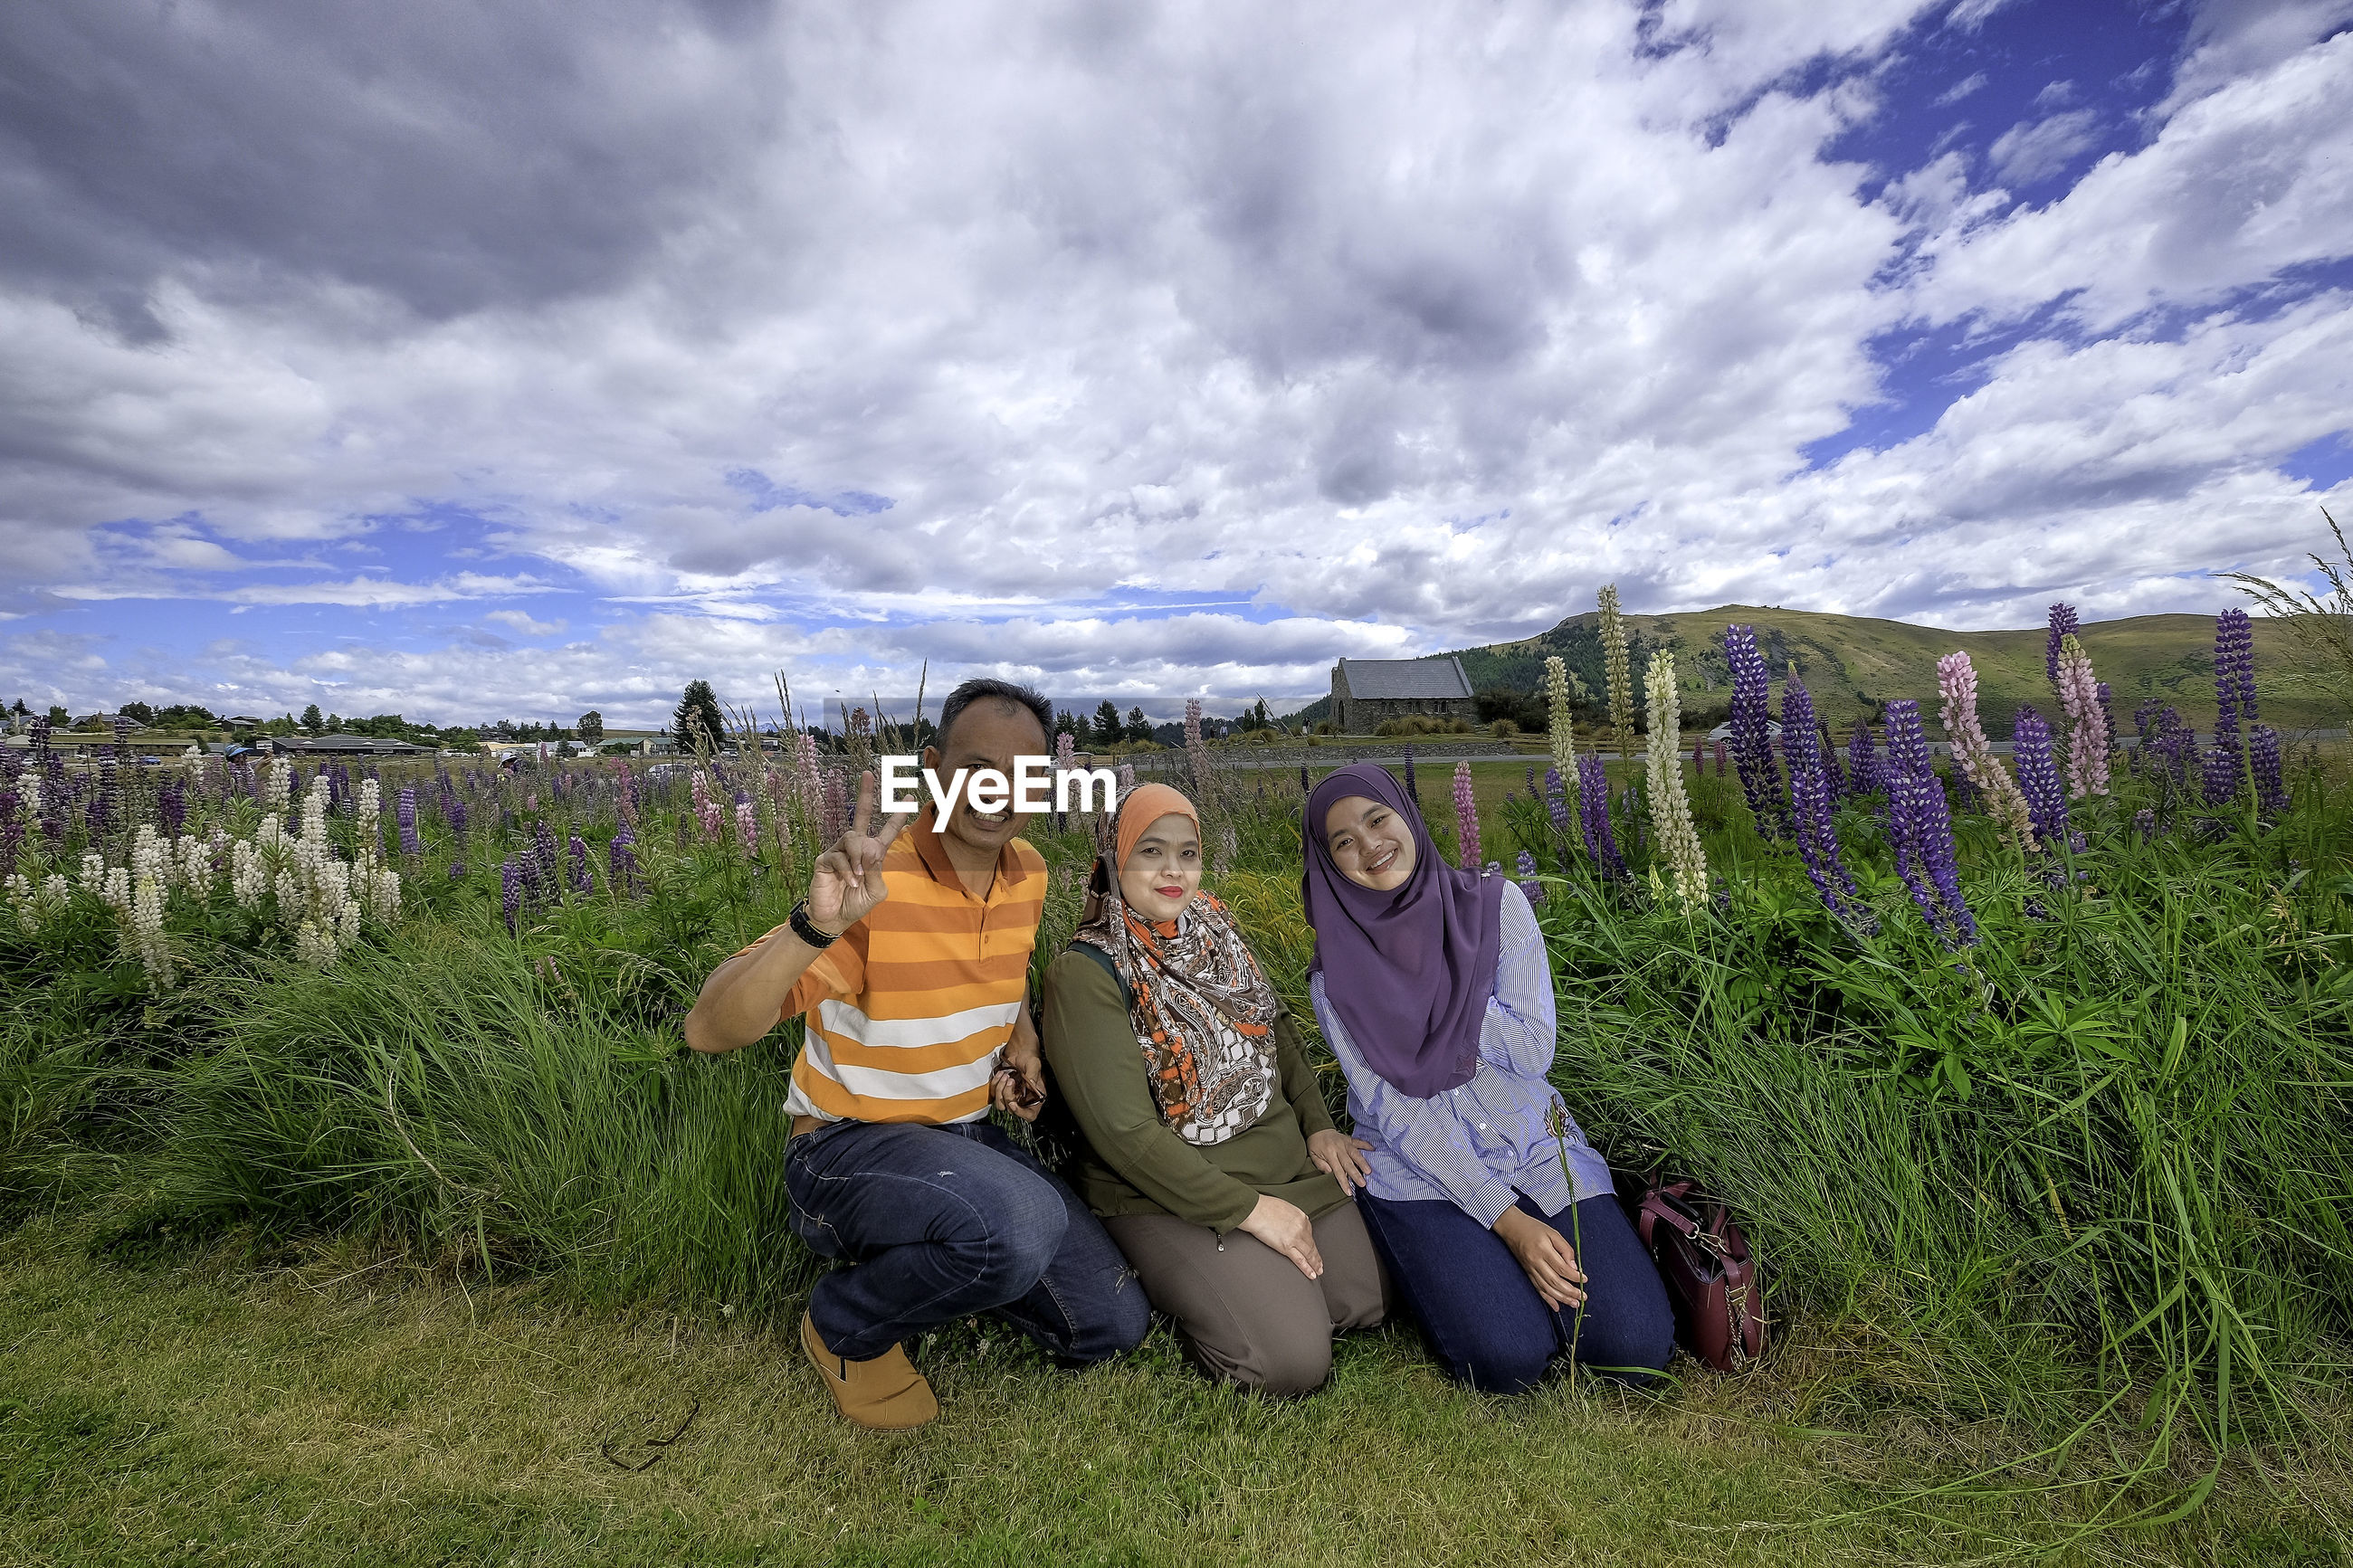 Portrait of smiling family on grassy field against cloudy sky